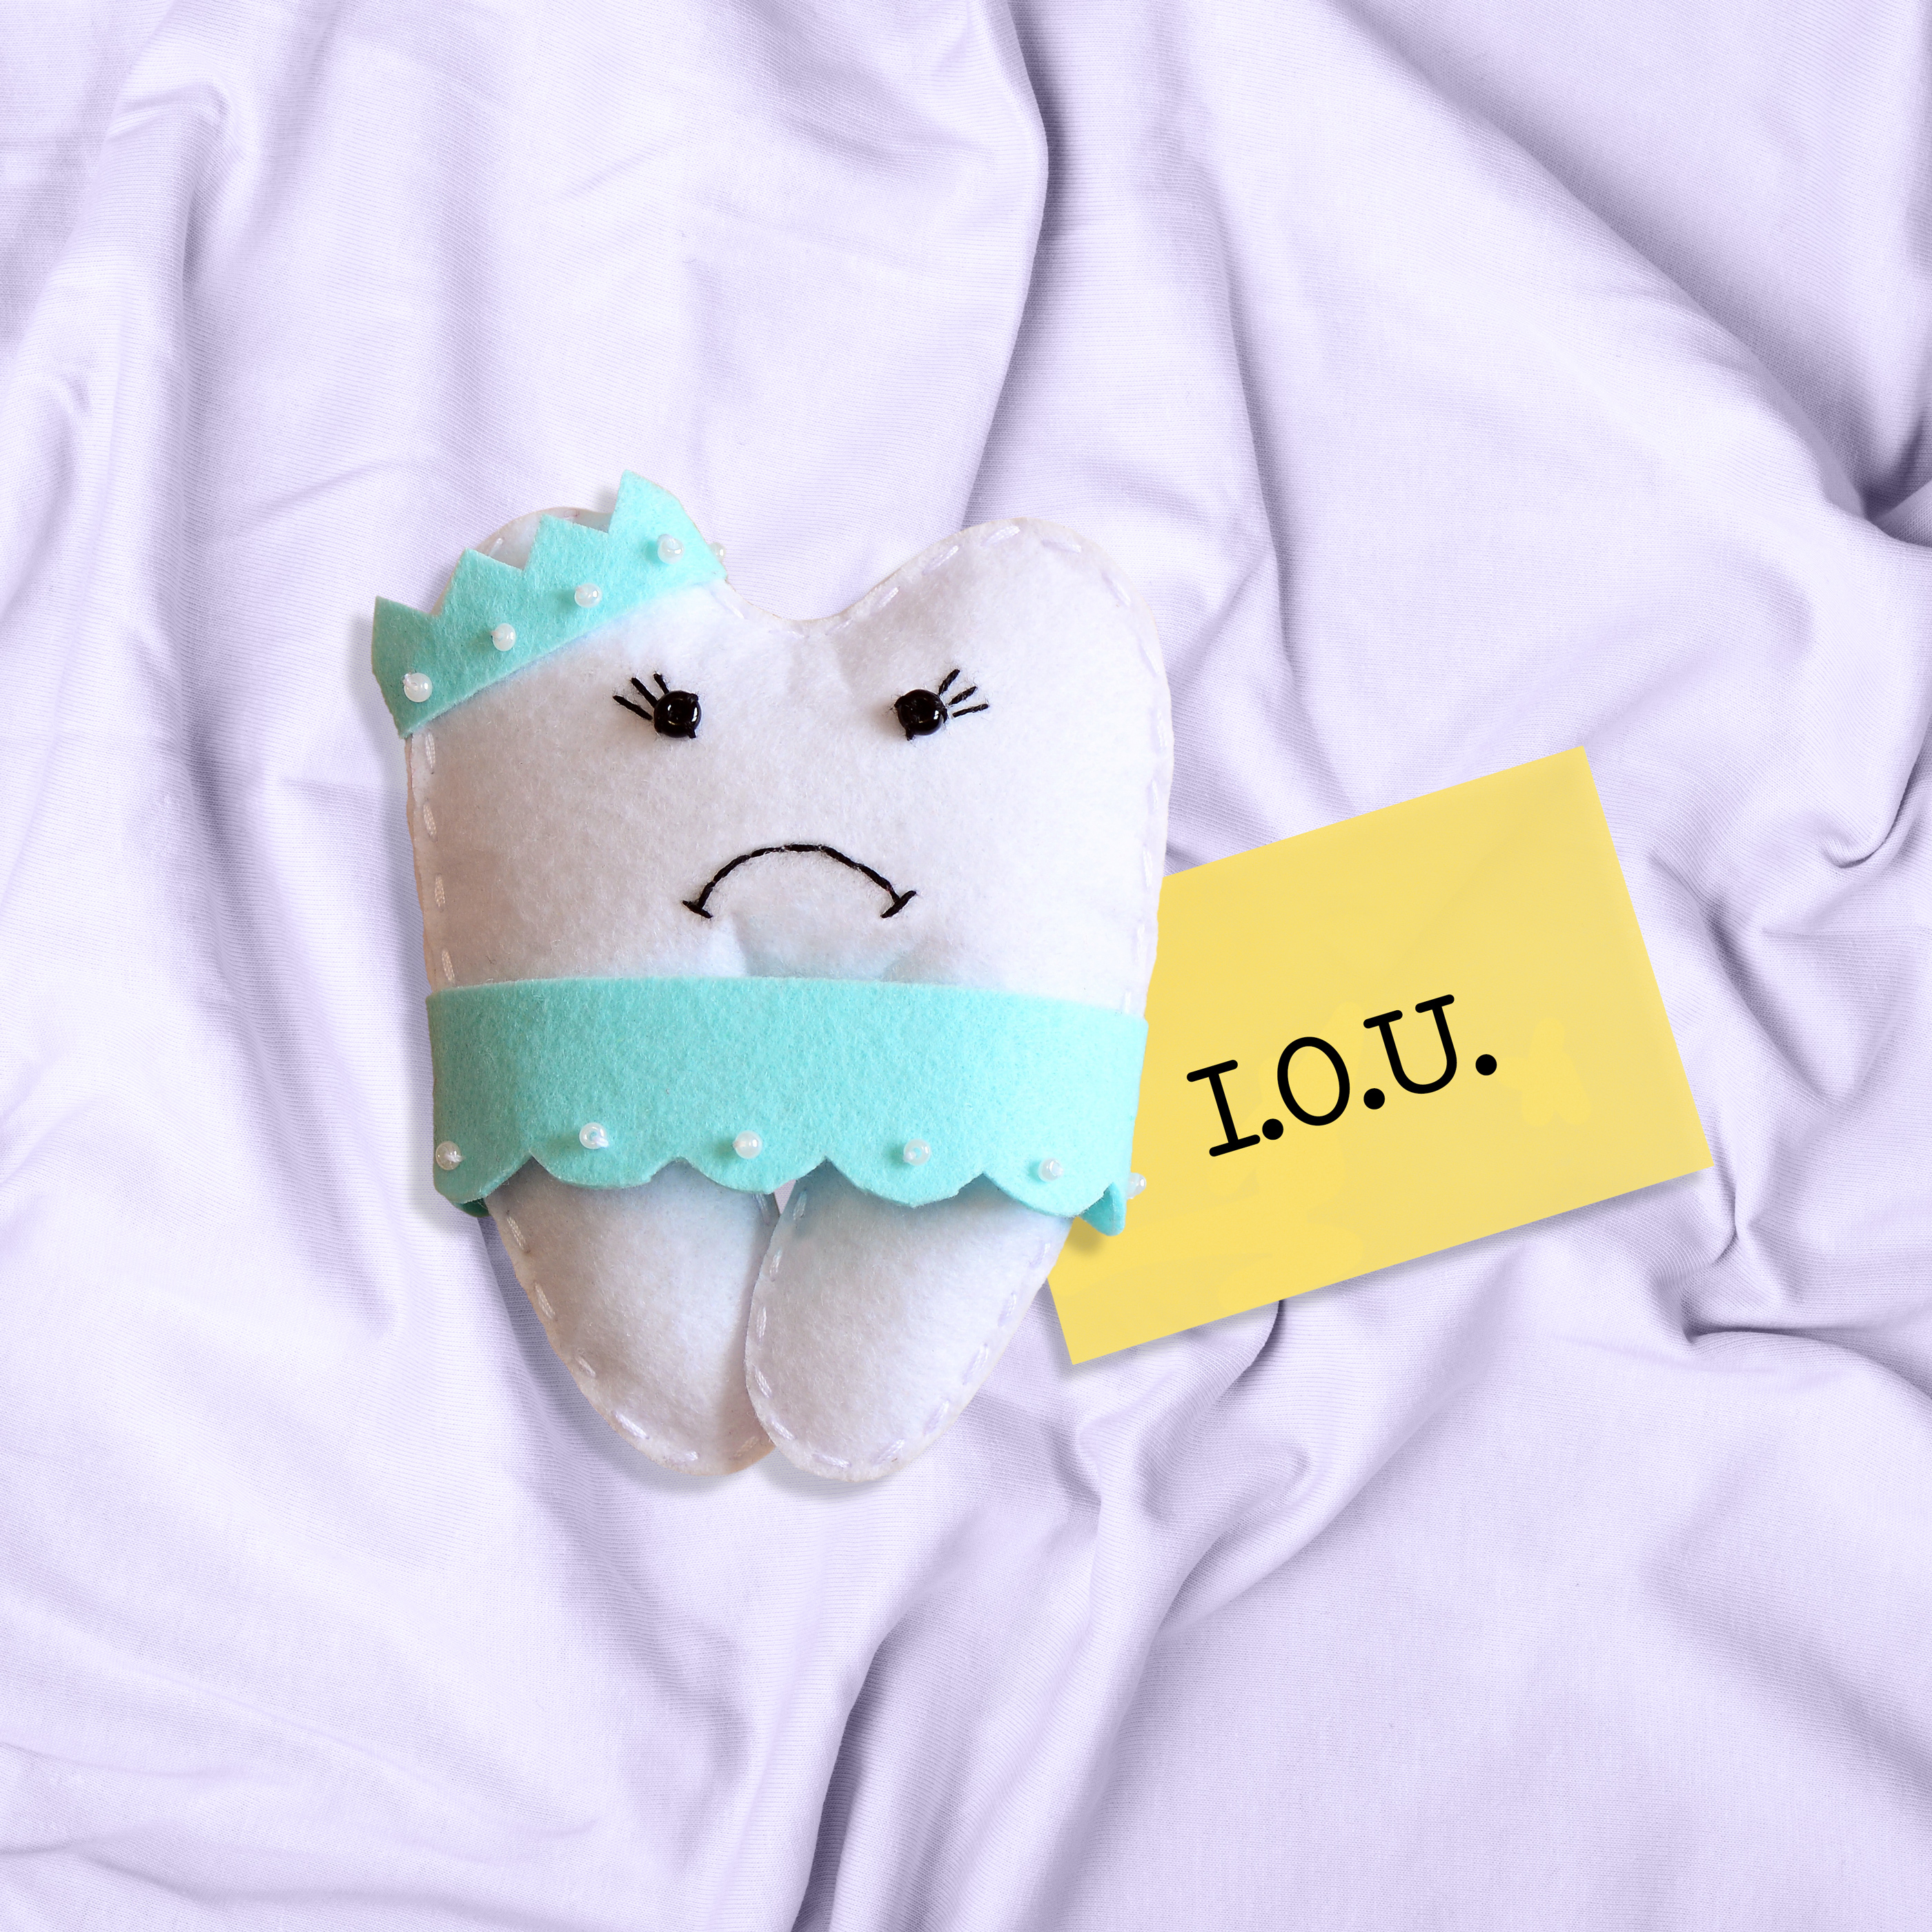 tooth pillow with I.O.U. note